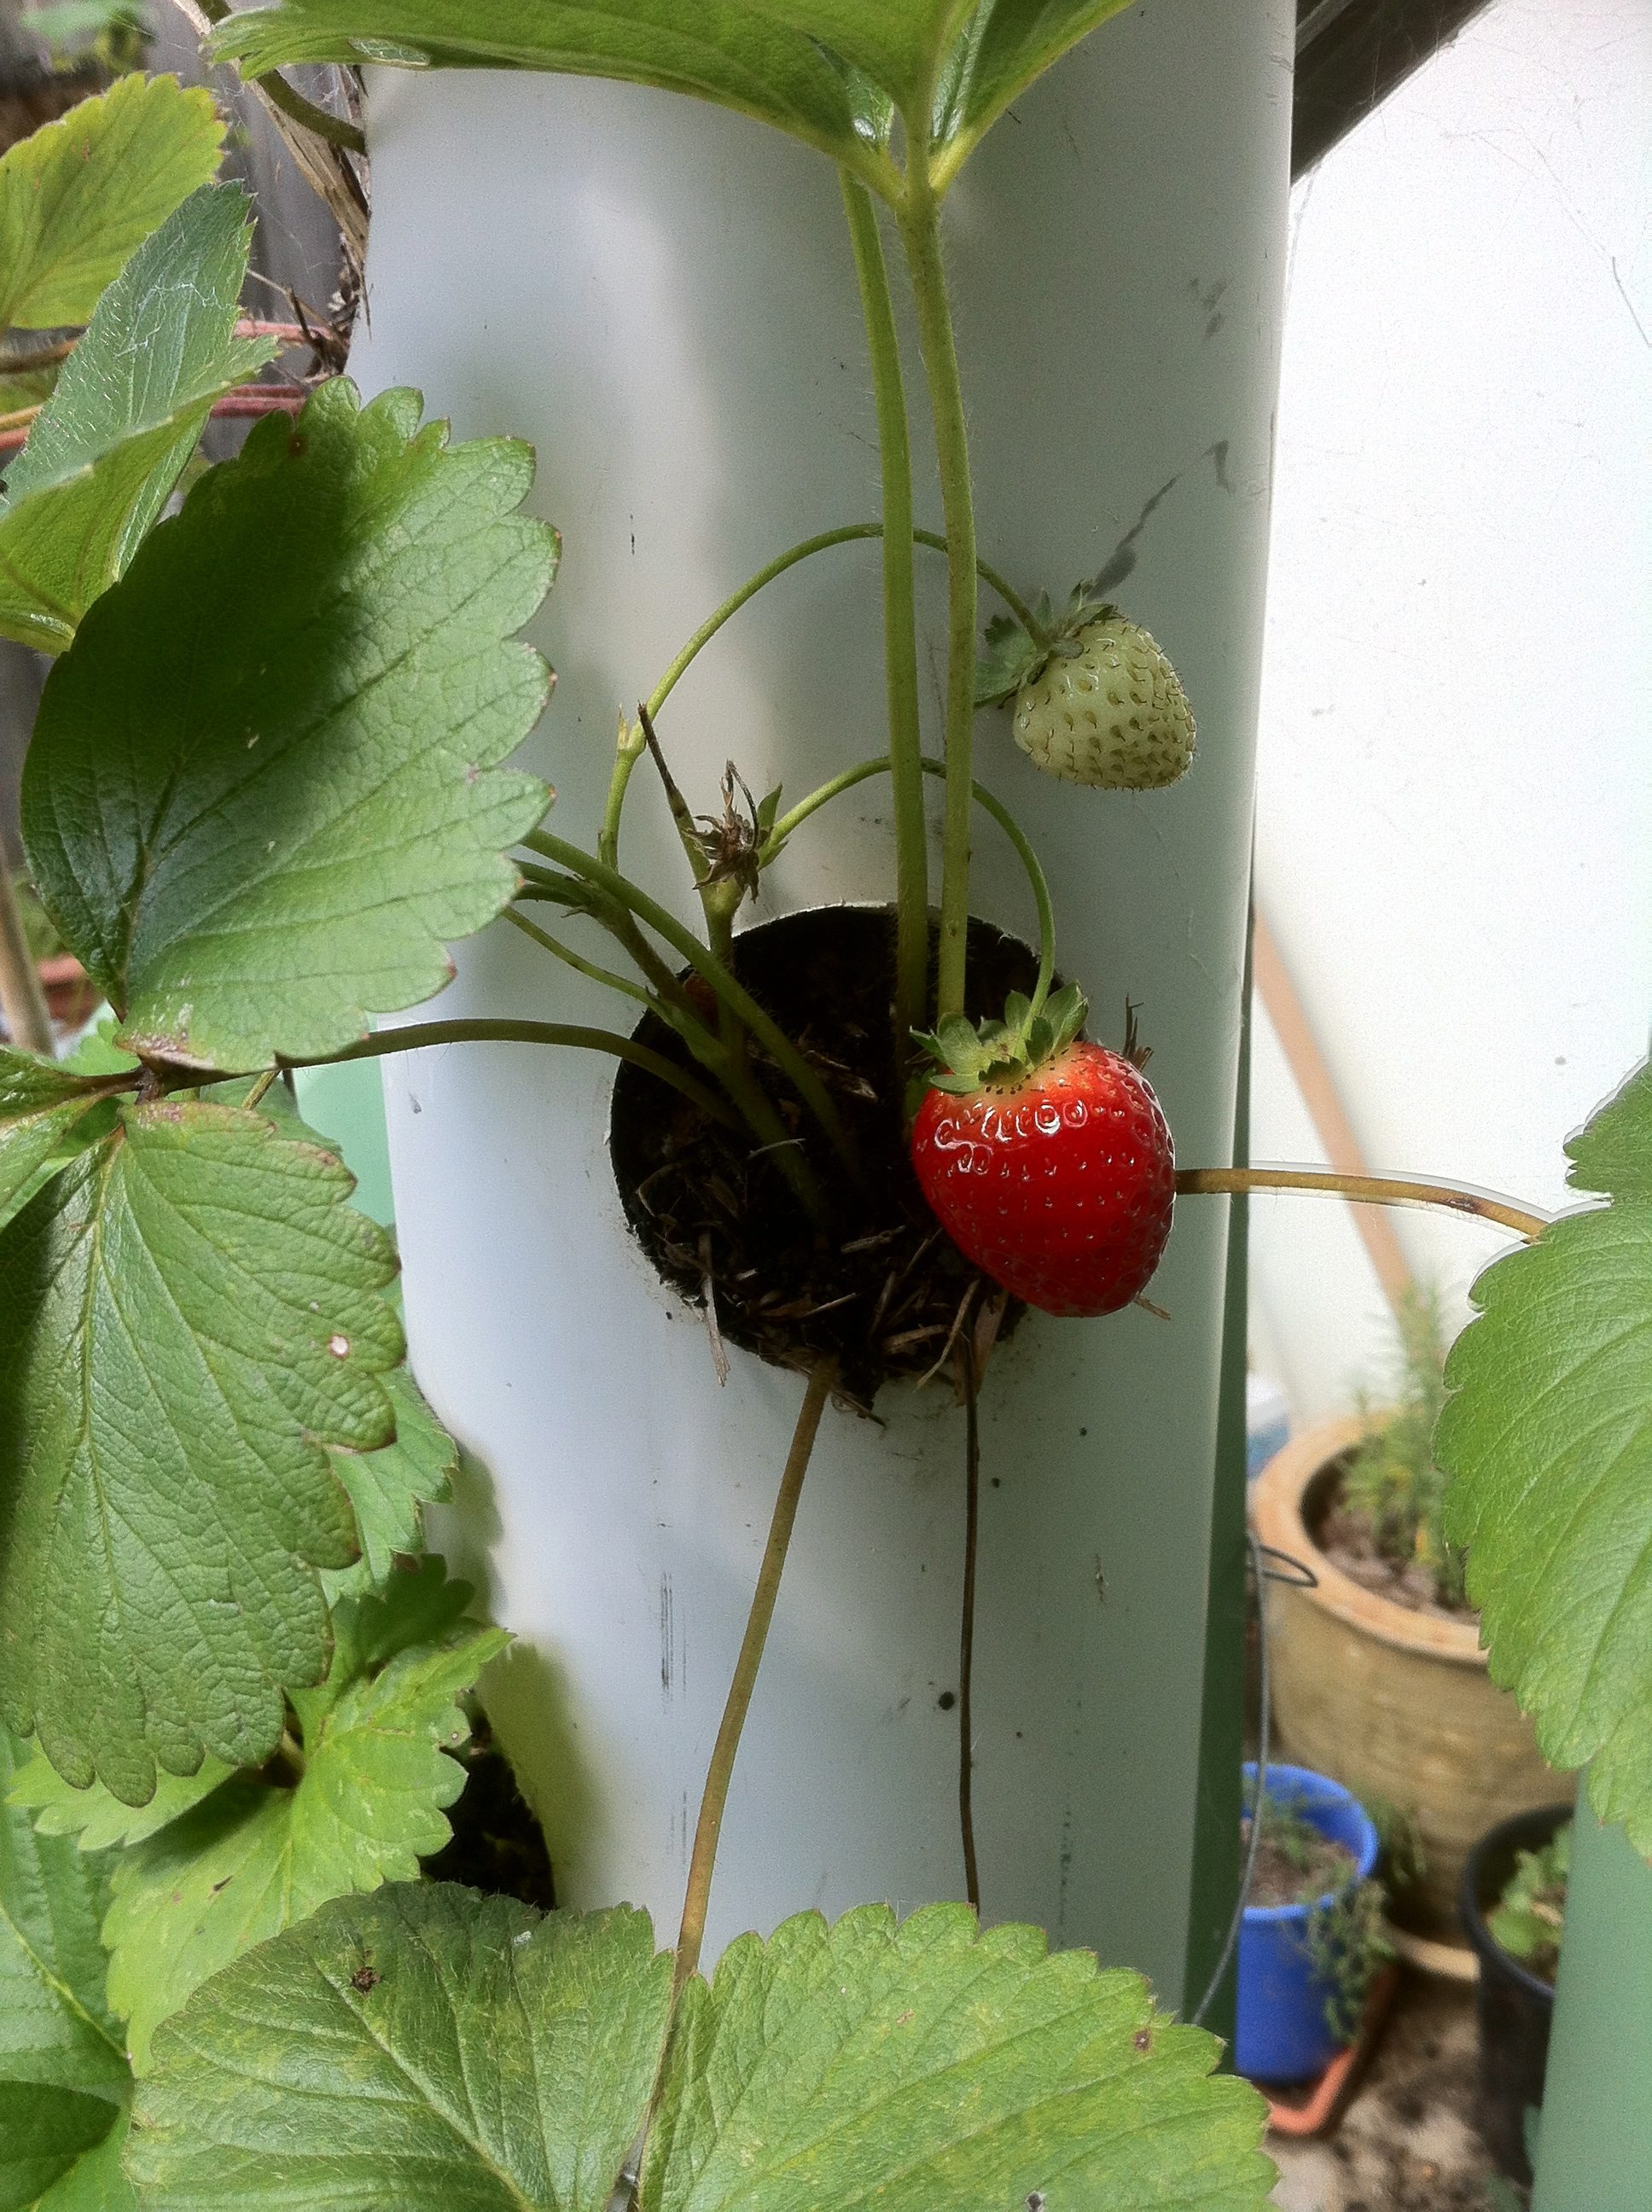 Vertical beds for strawberries from plastic bottles. Handmade high beds for strawberries 20